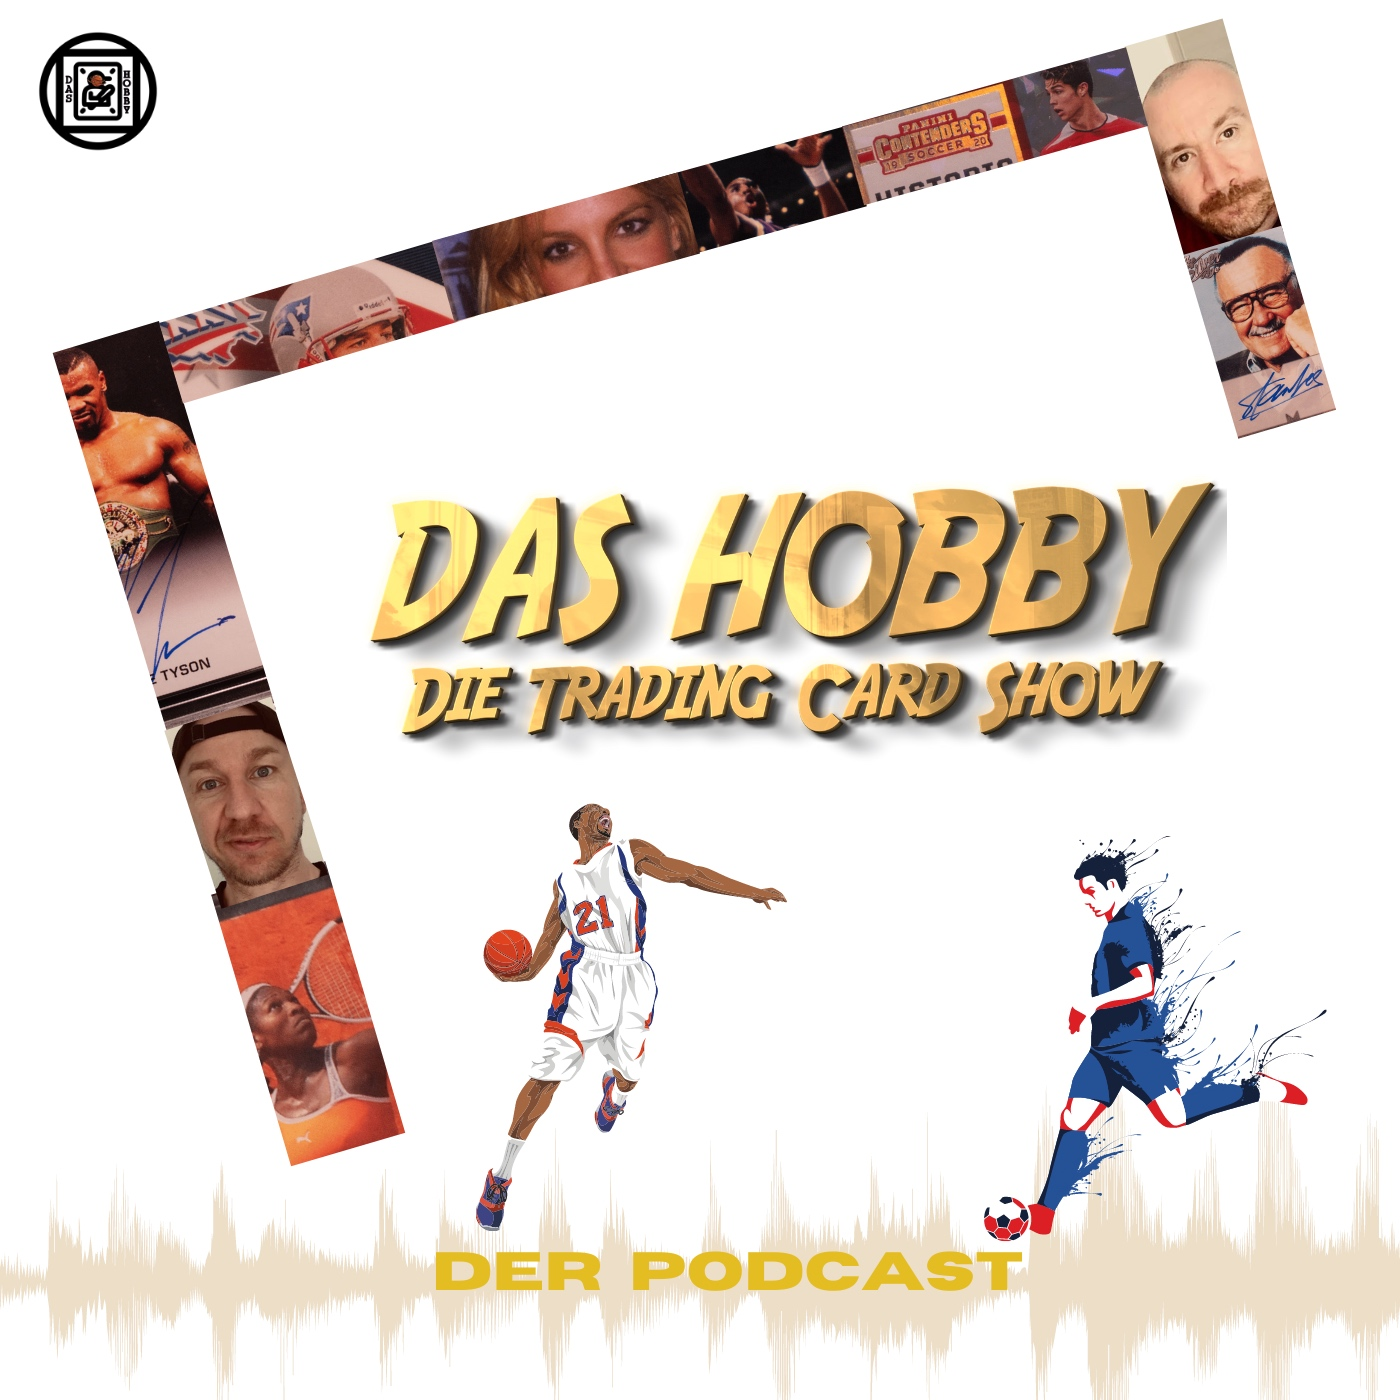 DAS HOBBY - Die Trading Card Show Podcast